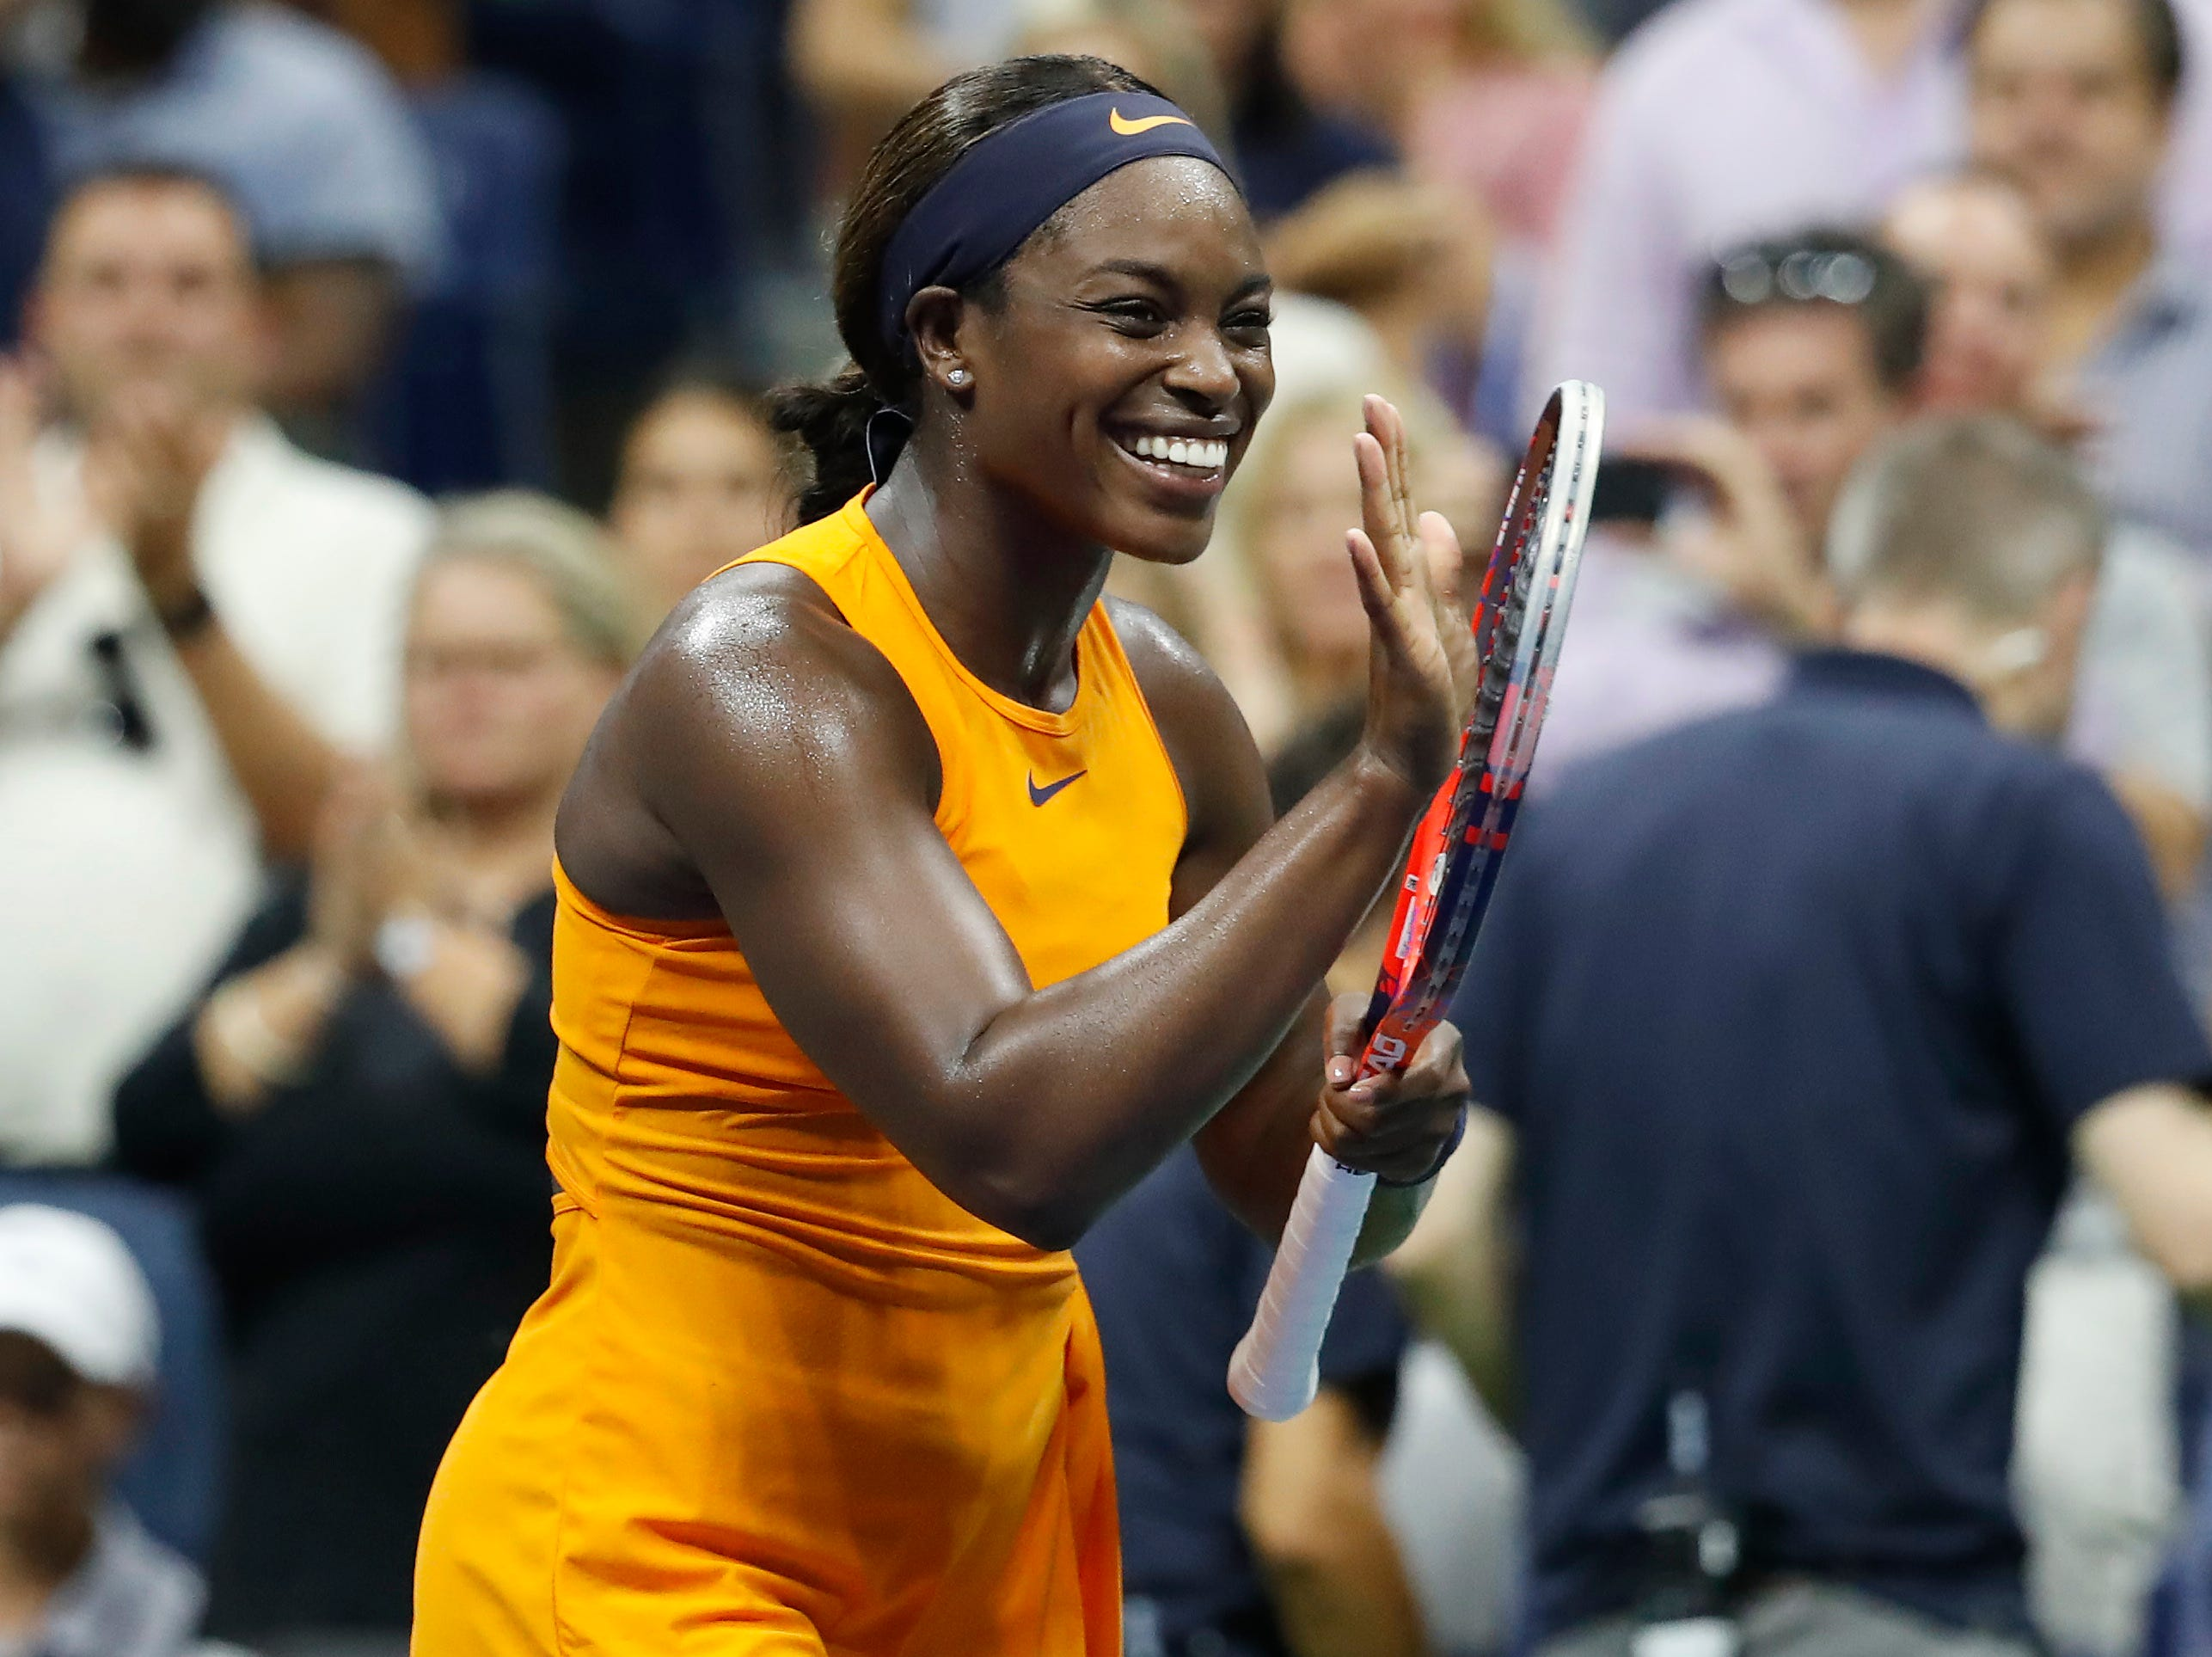 Sloane Stephens celebrates after her beating Elise Mertens in the fourth round.